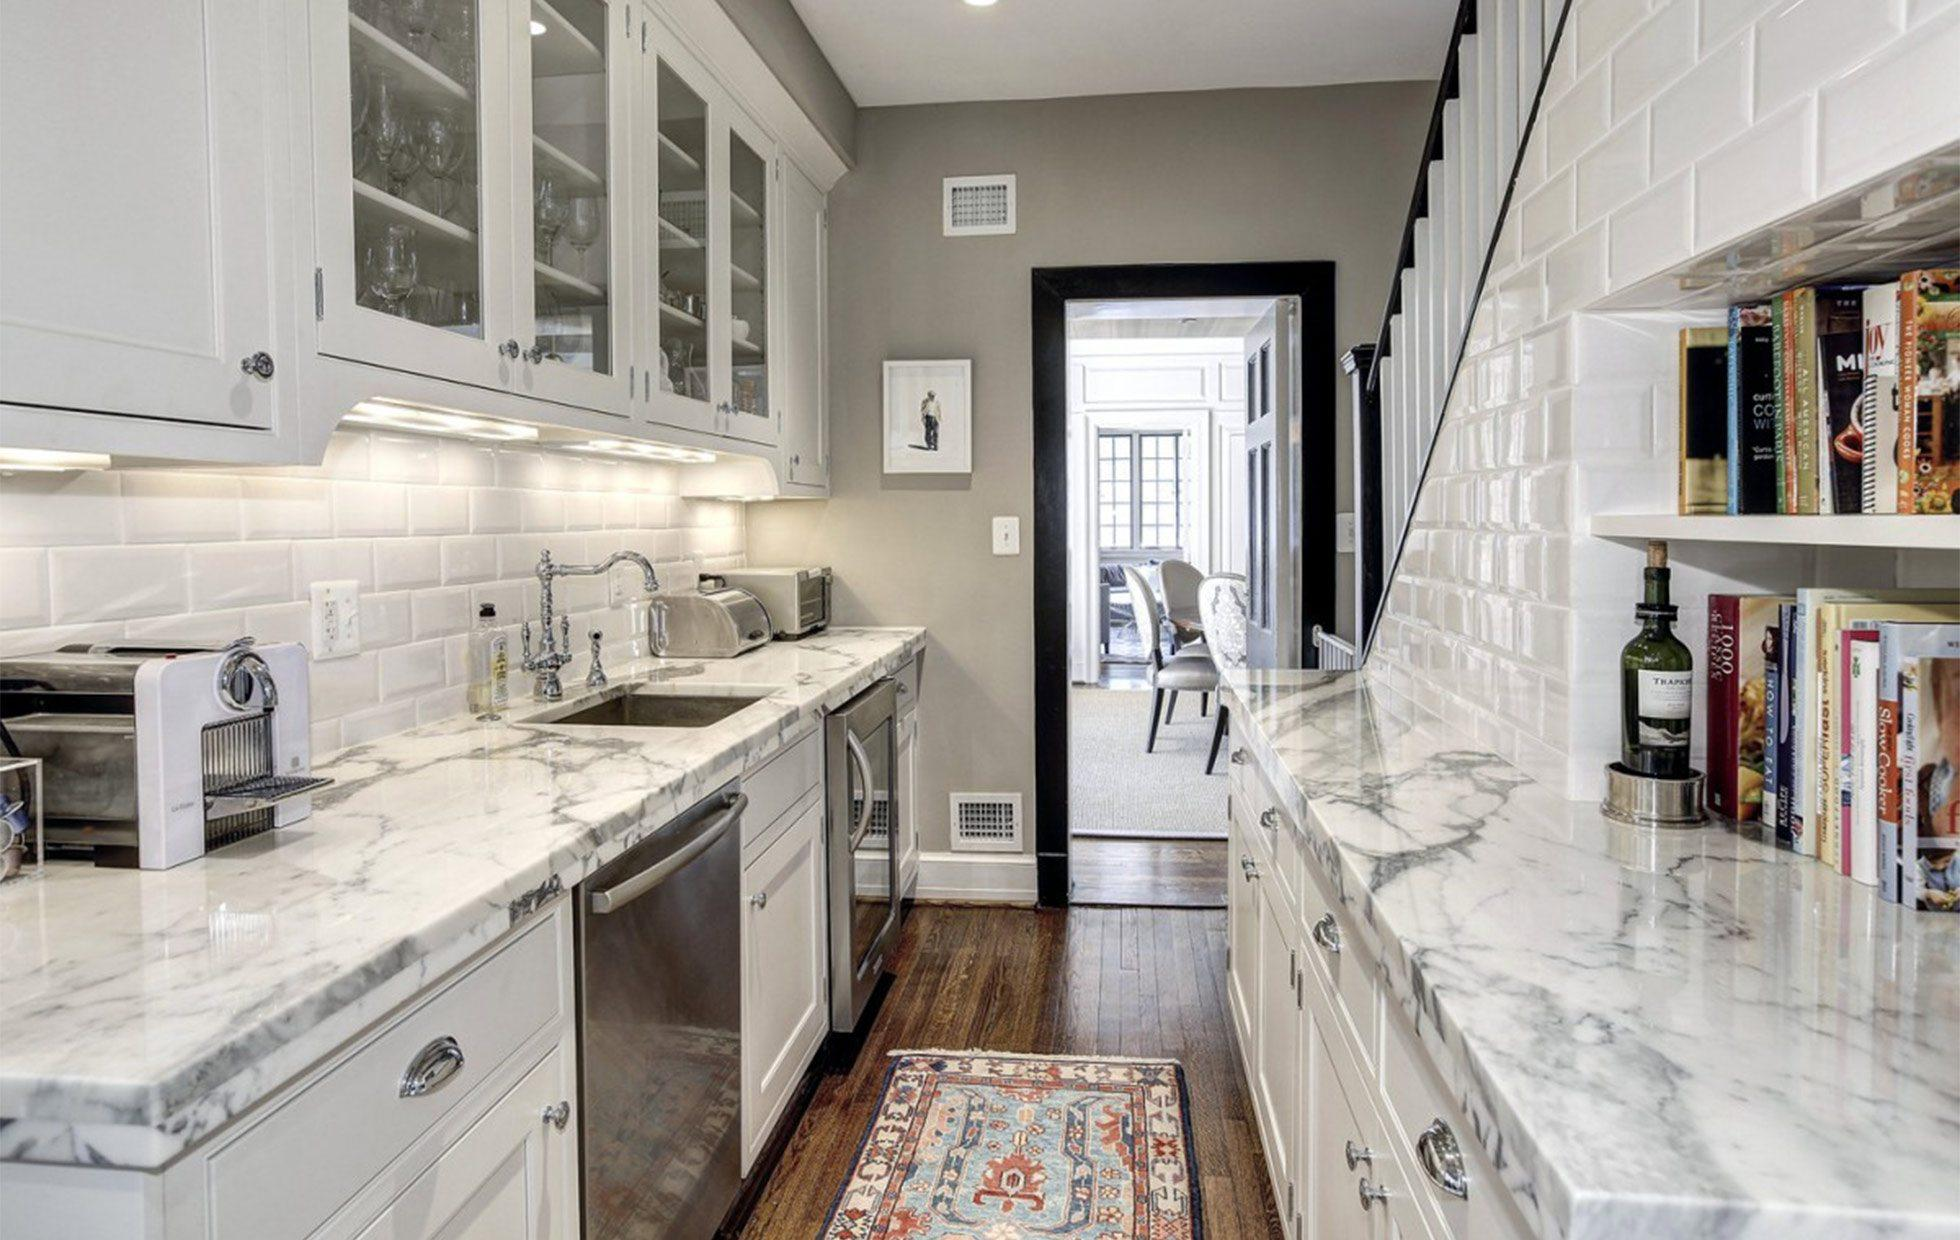 5882008b656d62446-Belmont-Road-NW-Washington-DC-Obamas-New-Home-Butlers-Pantry-1200x800